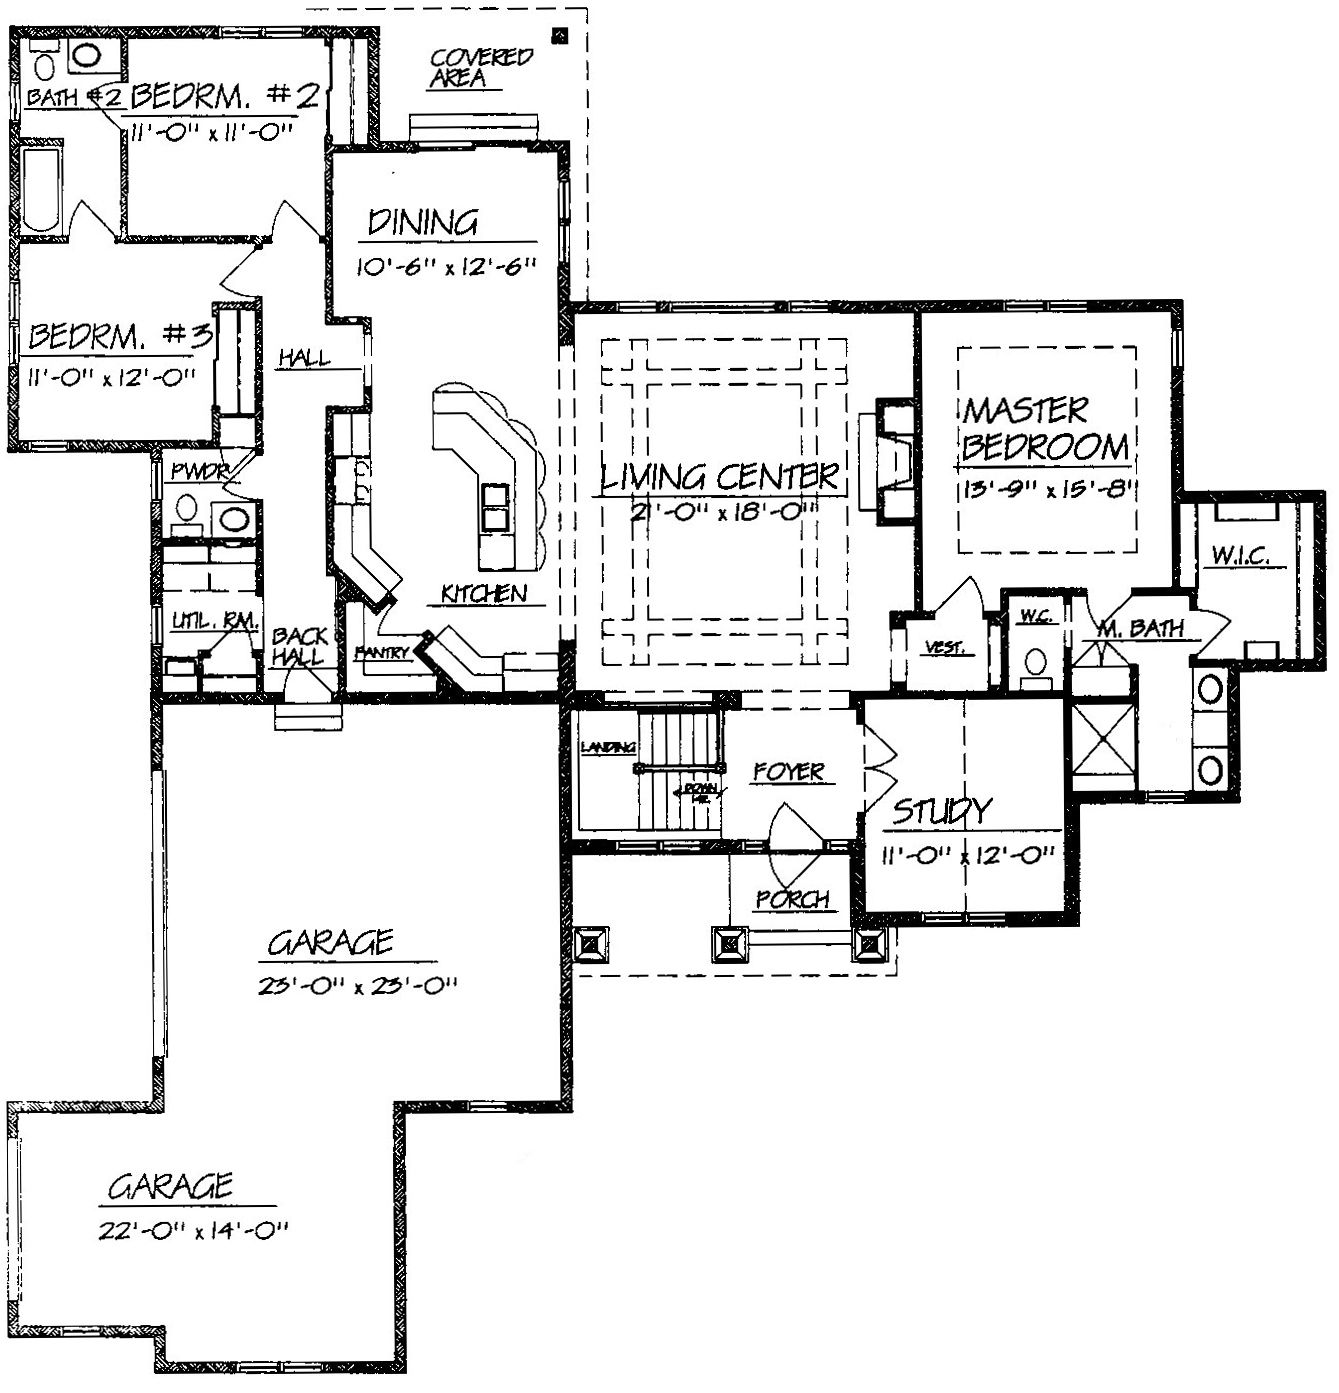 Best Images About Design In The Home On Pinterest House Plans - Ranch home design plans